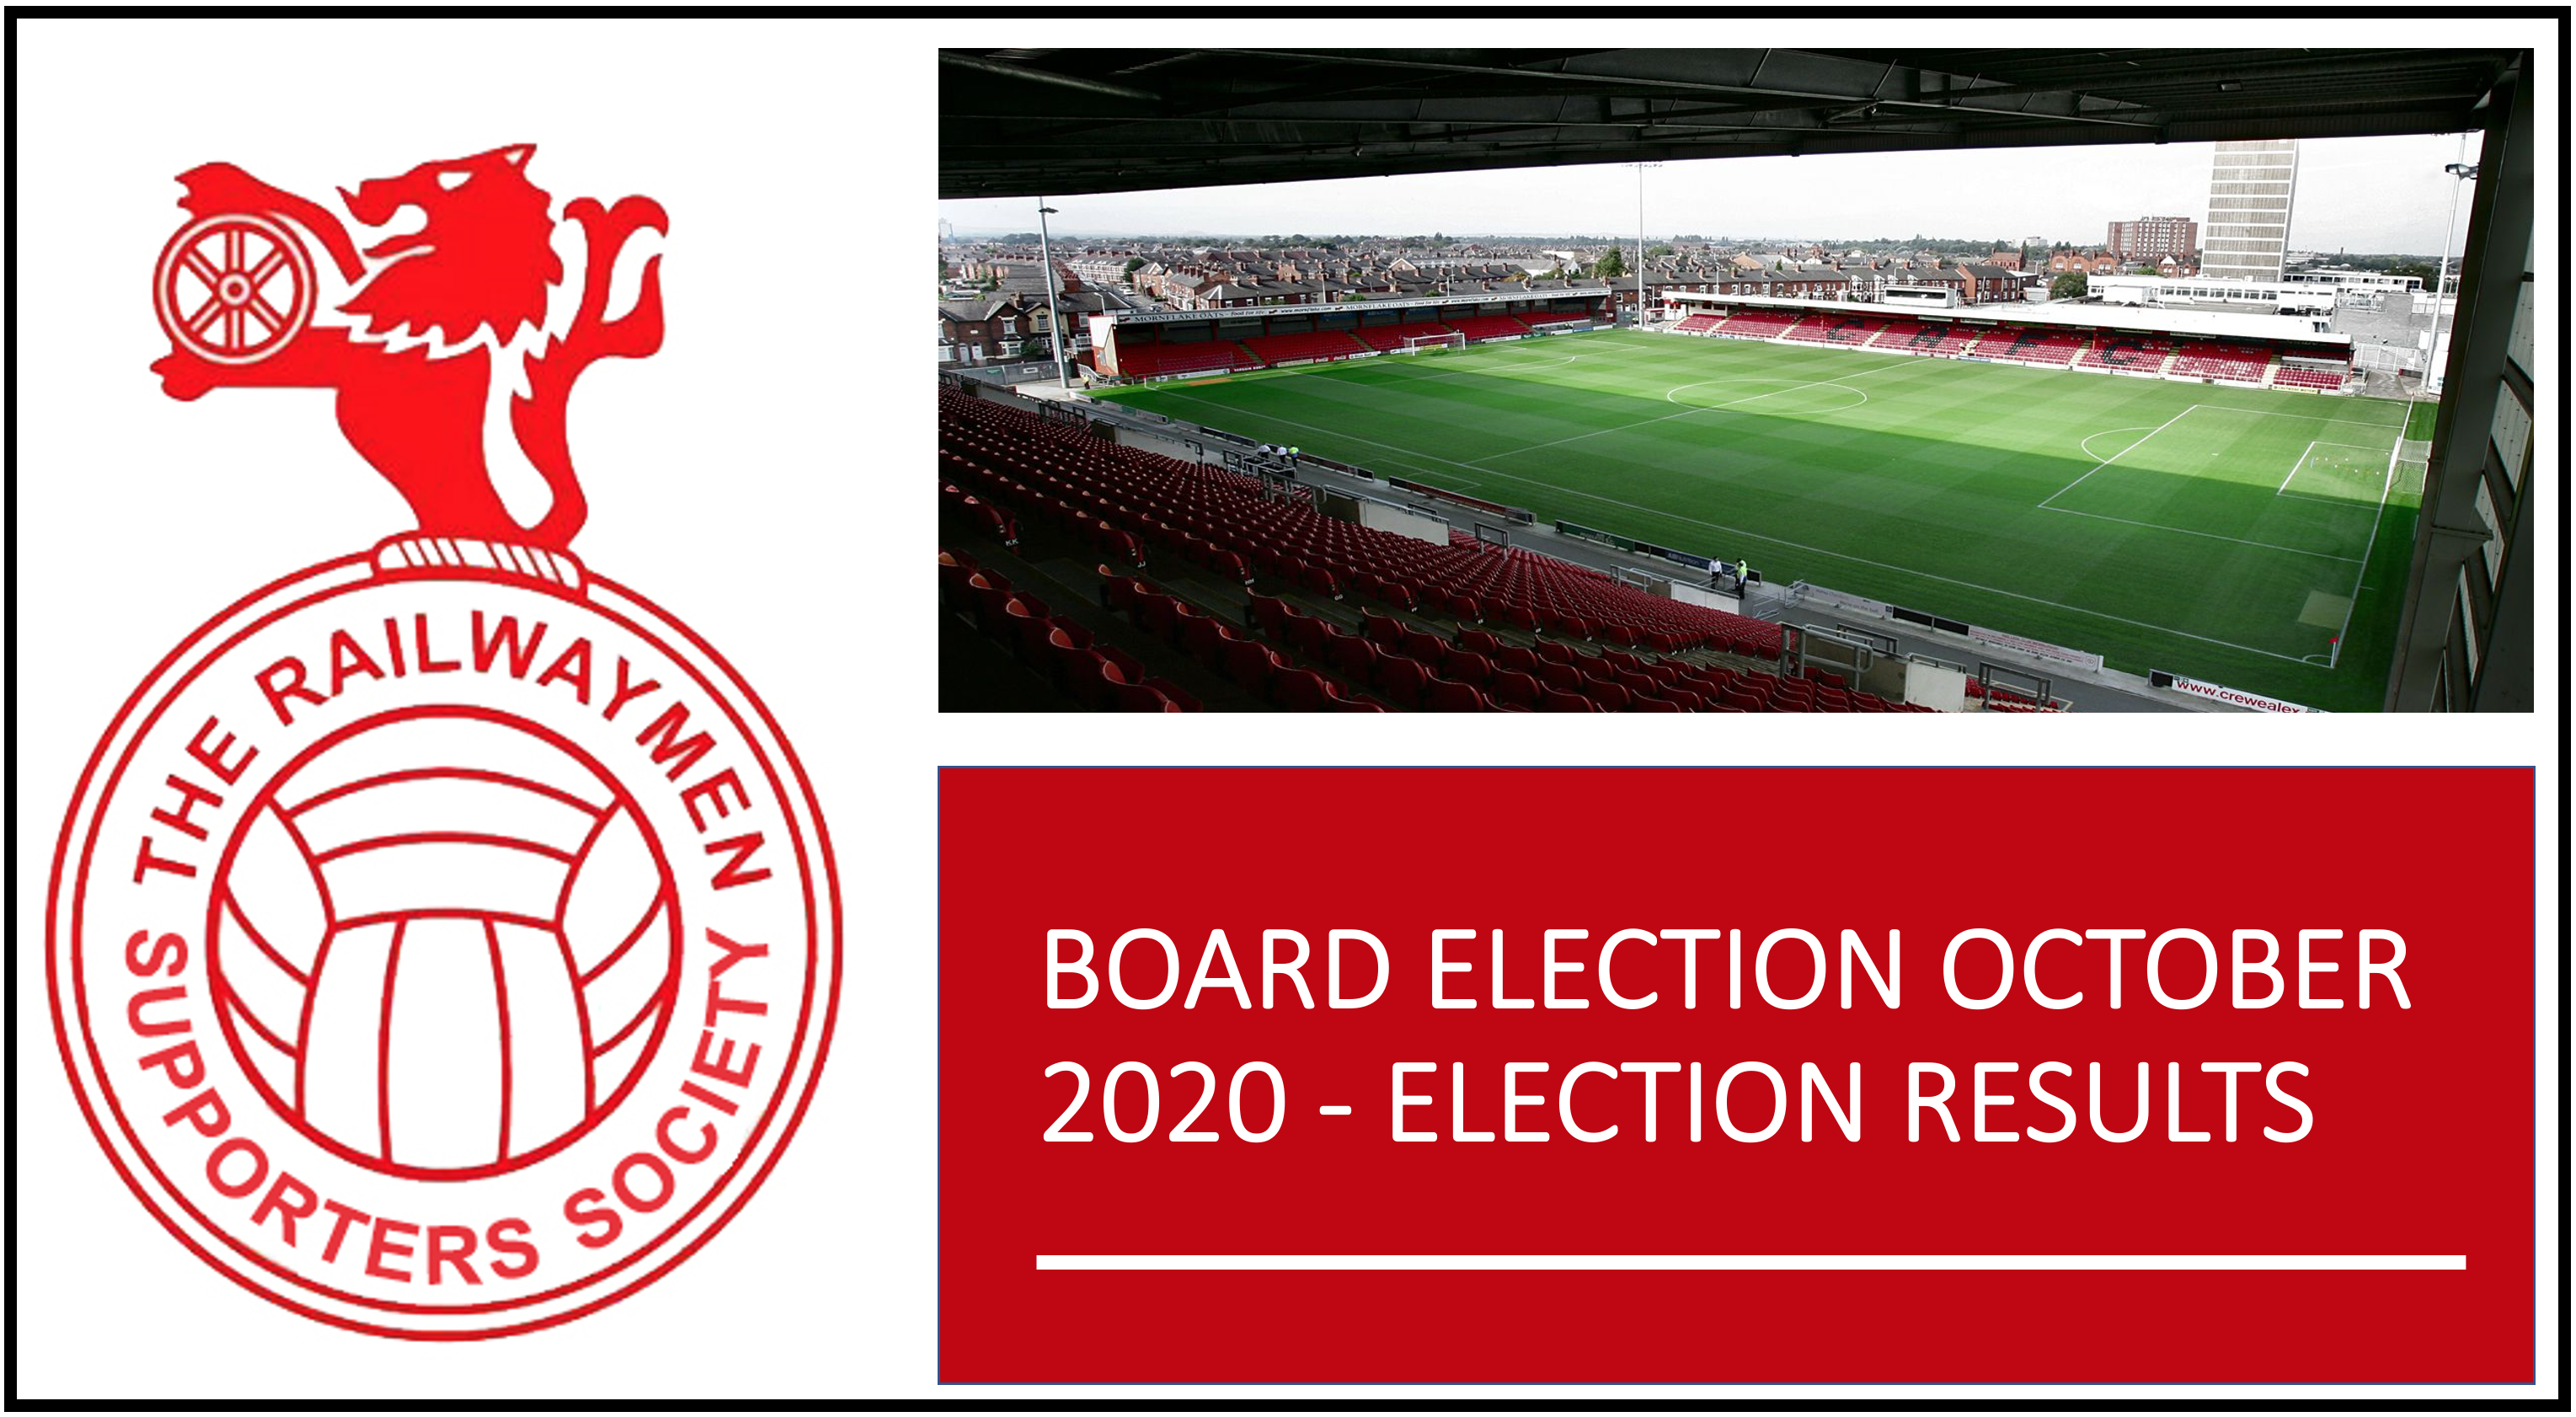 BOARD ELECTION OCTOBER 2020 – ELECTION RESULTS